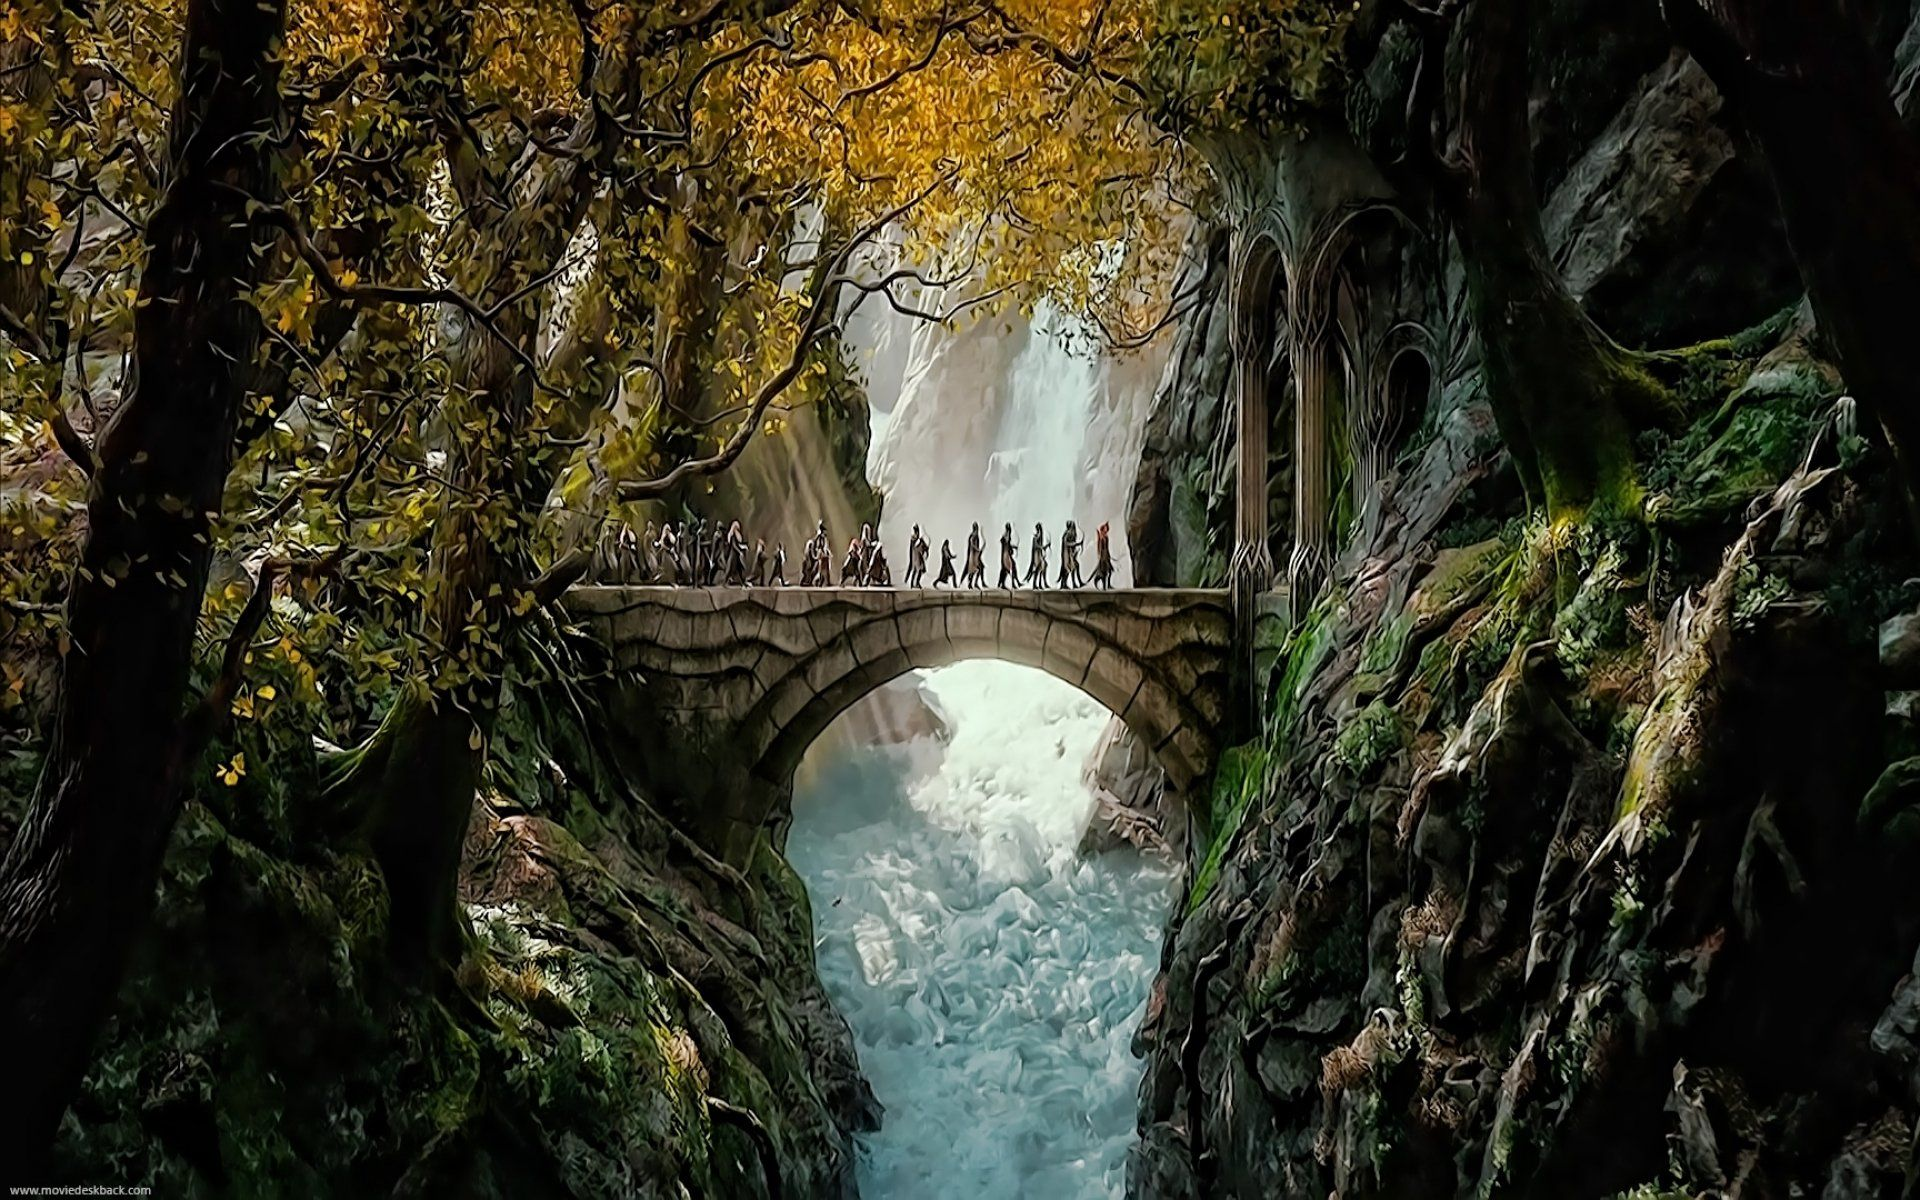 Lord Of The Rings Wallpaper Images | Tolkien | Pinterest ...